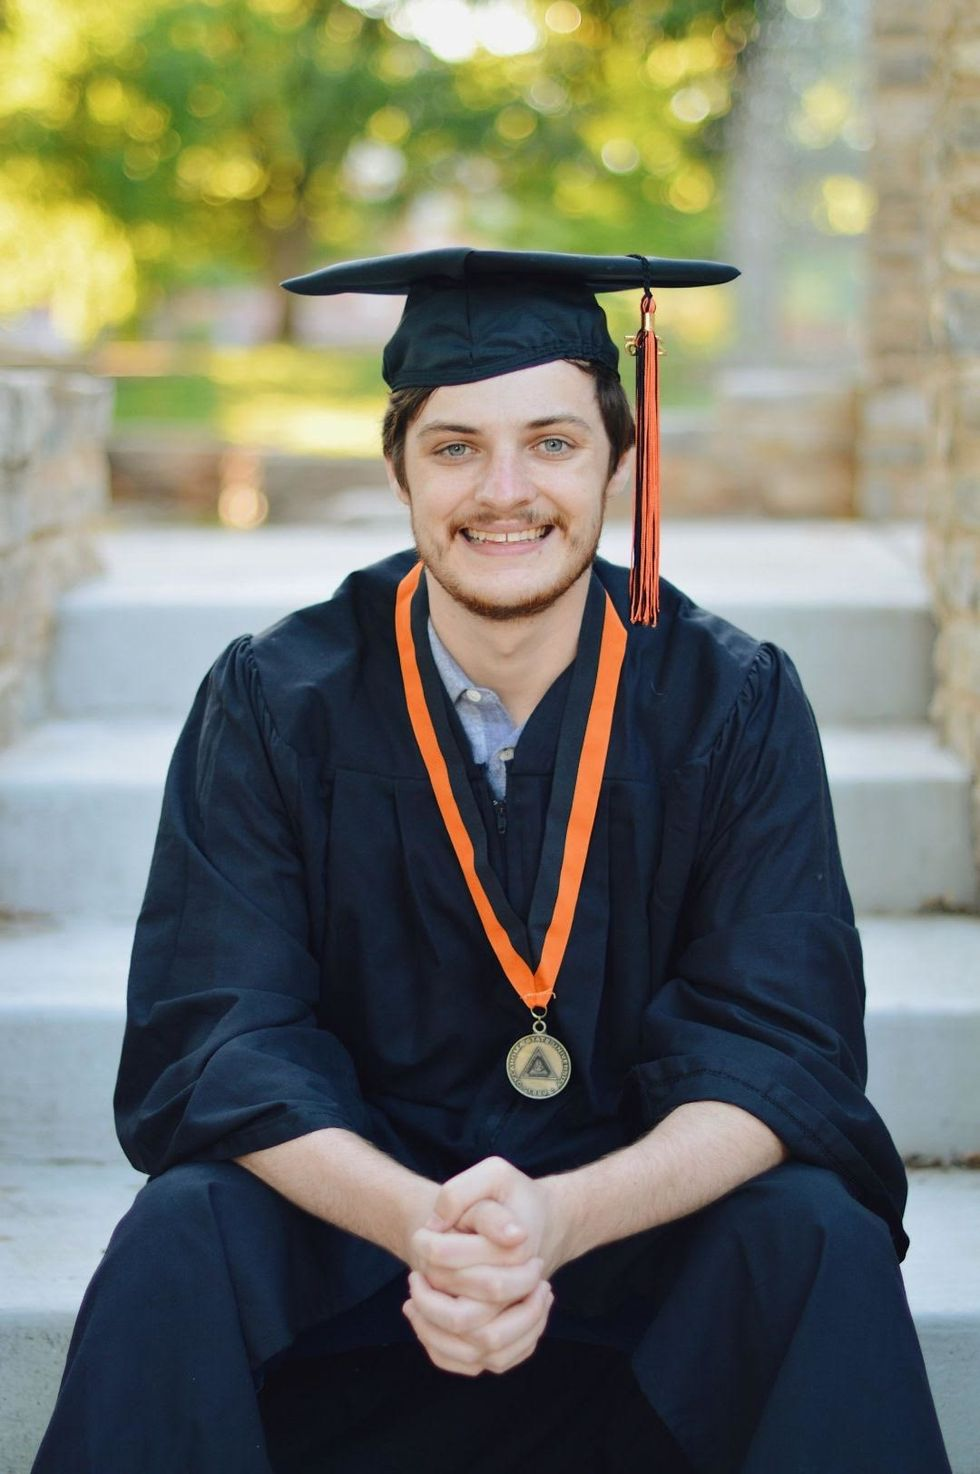 I Spoke To A Class of 2020 Senior From Oklahoma State, And Graduating In A Pandemic Gives A Lot Of Mixed Feelings